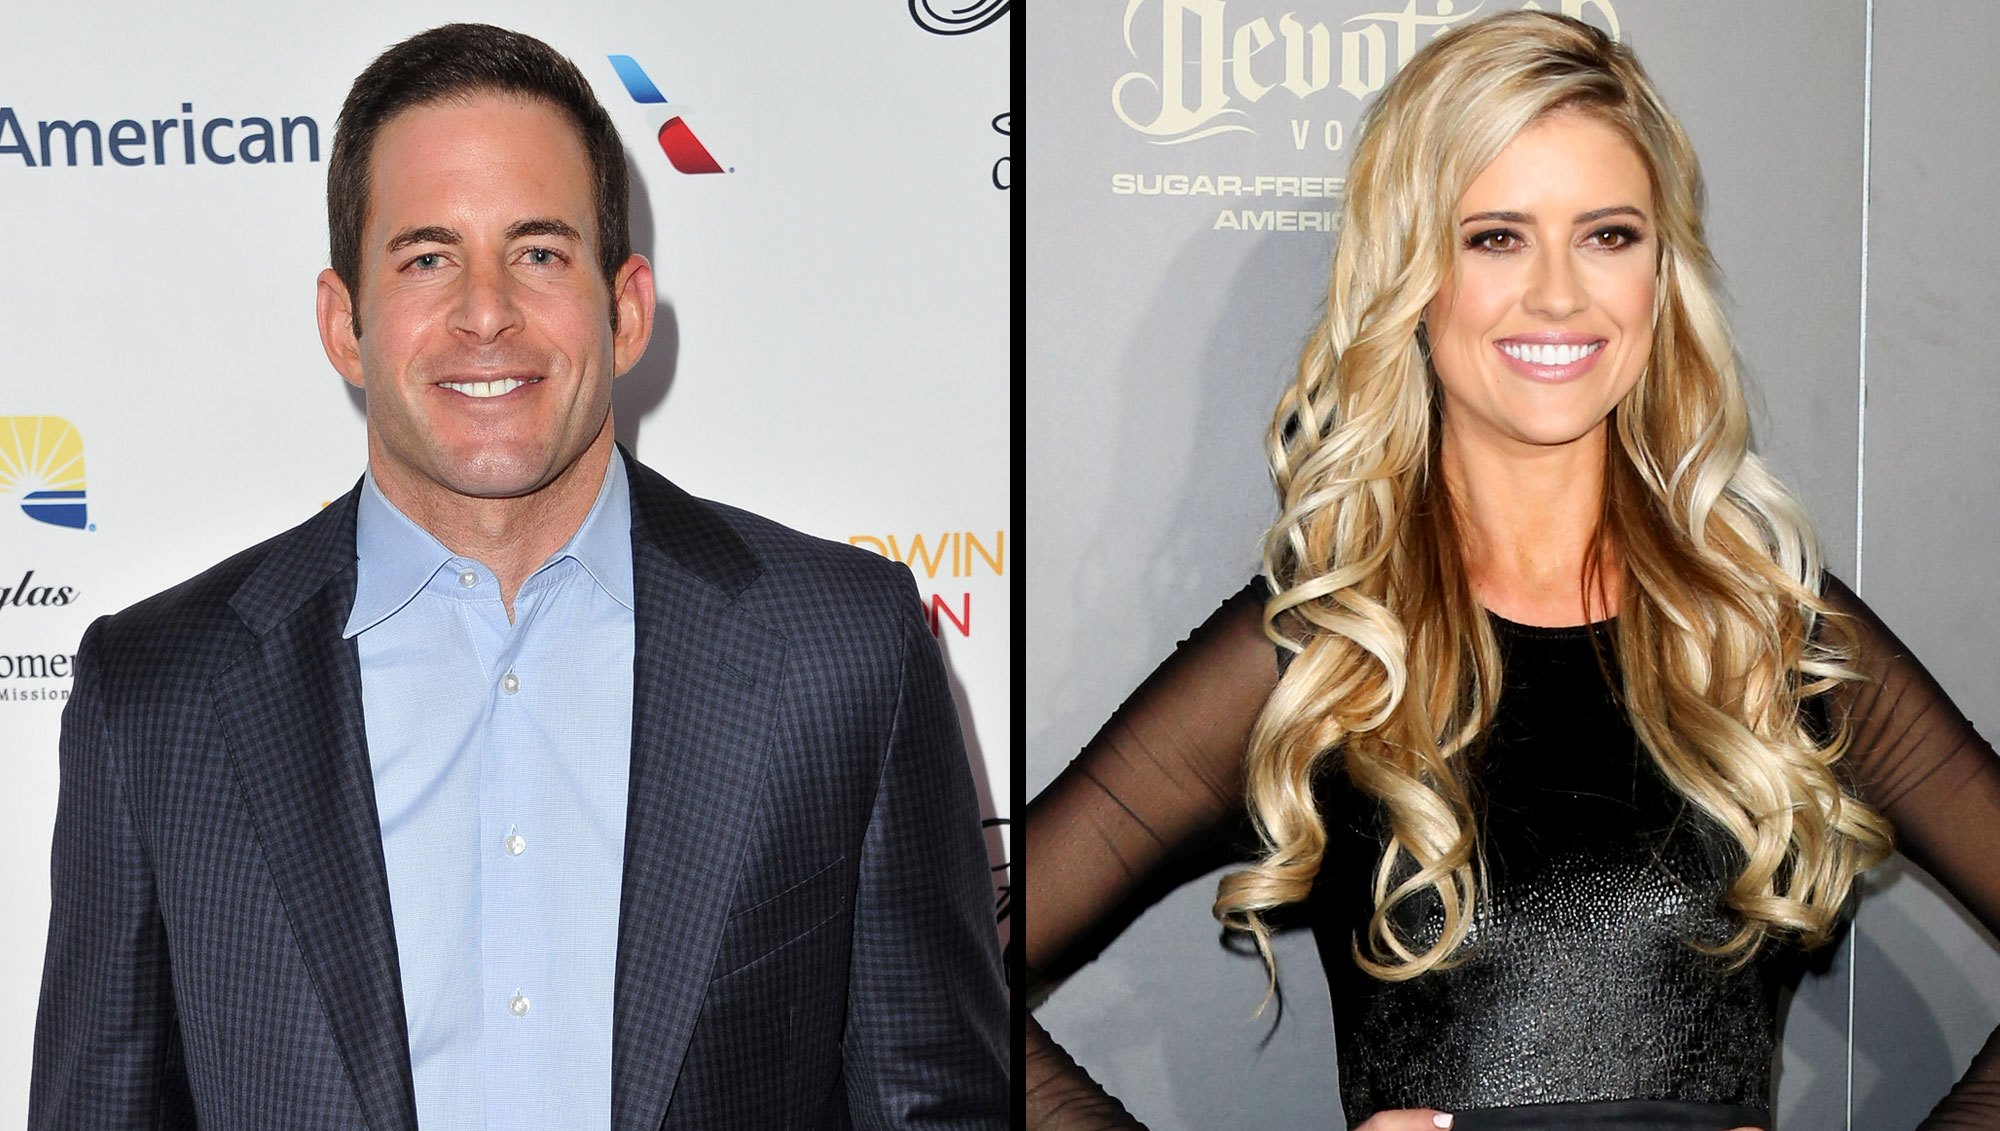 Tarek El Moussa Posts About 'My Babies' After Ex-Wife Christina Anstead Announces Pregnancy